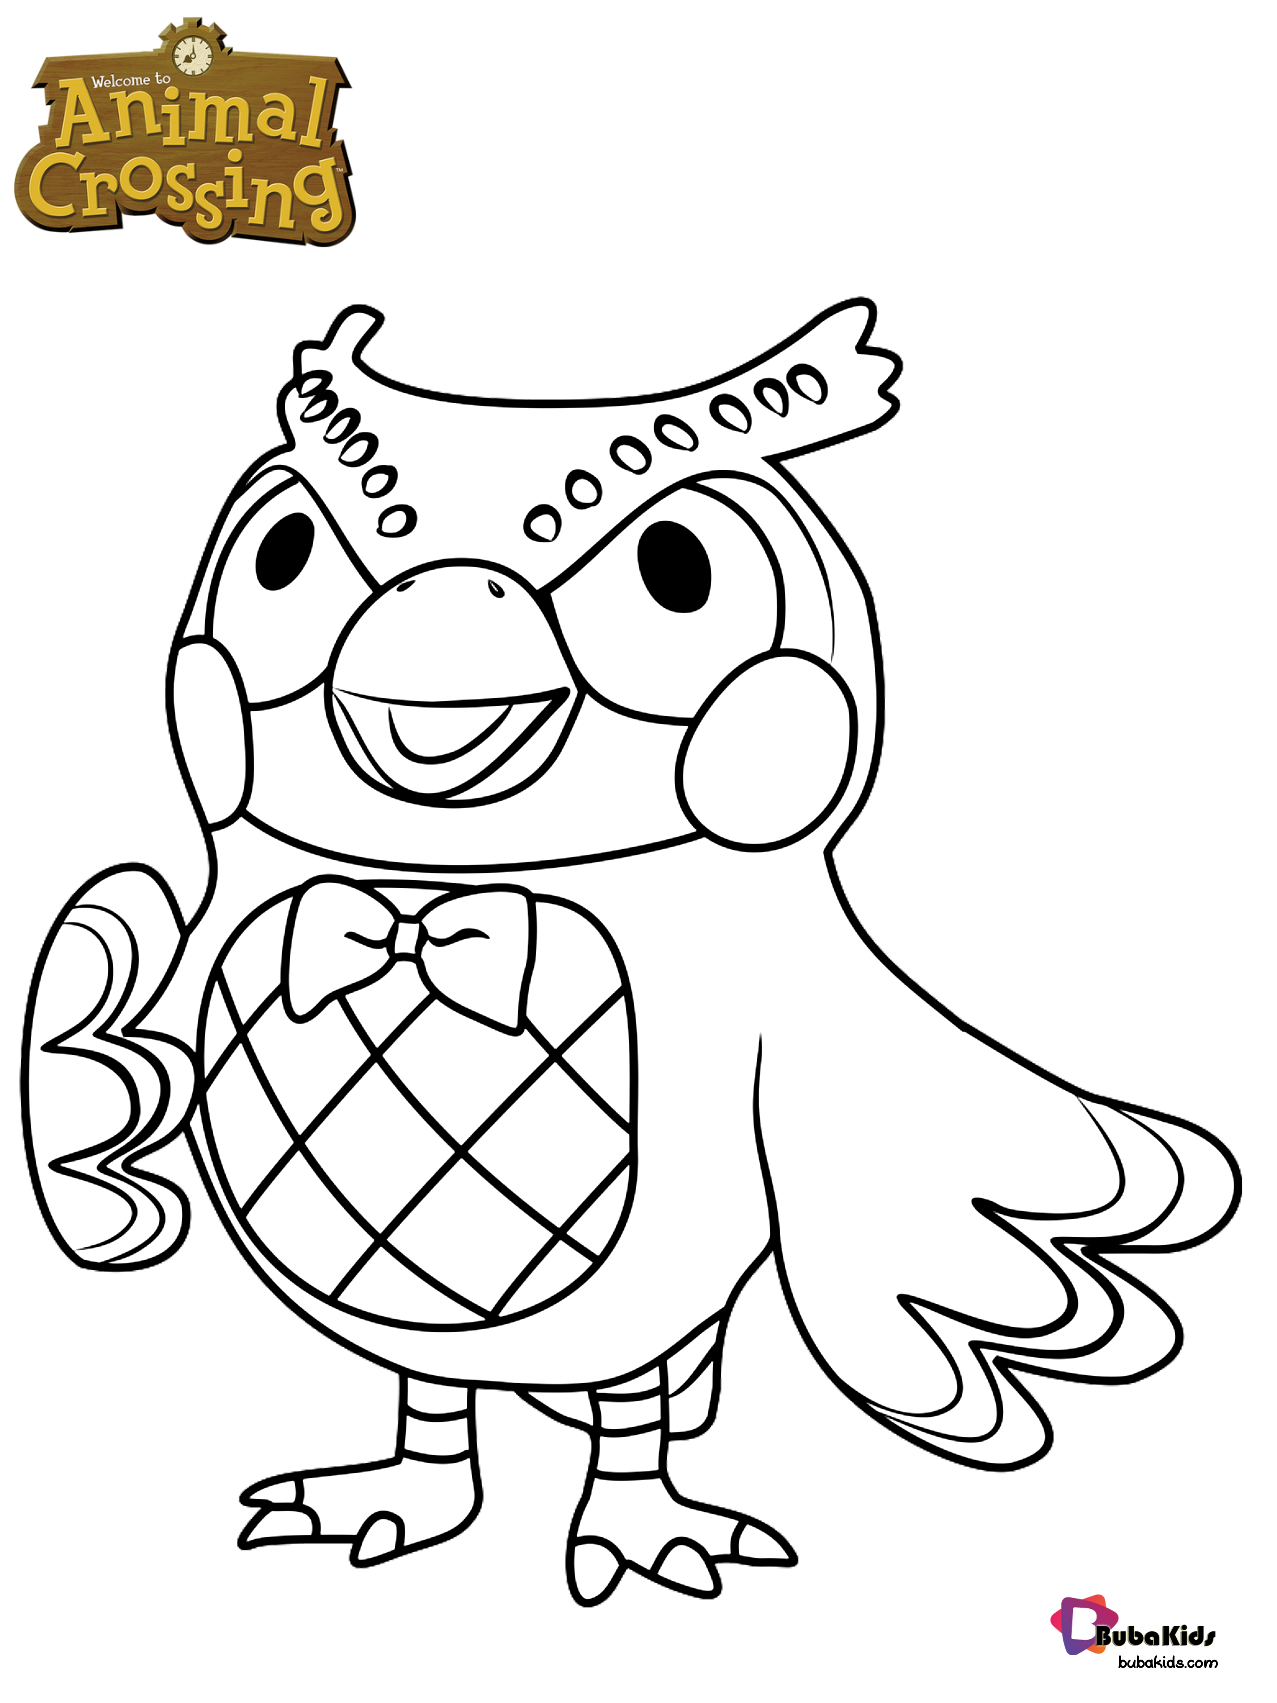 Blathers The Owl Animal Crossing Character Coloring Page Collection Of Cartoon Coloring Page Animal Crossing Characters Cartoon Coloring Pages Animal Crossing